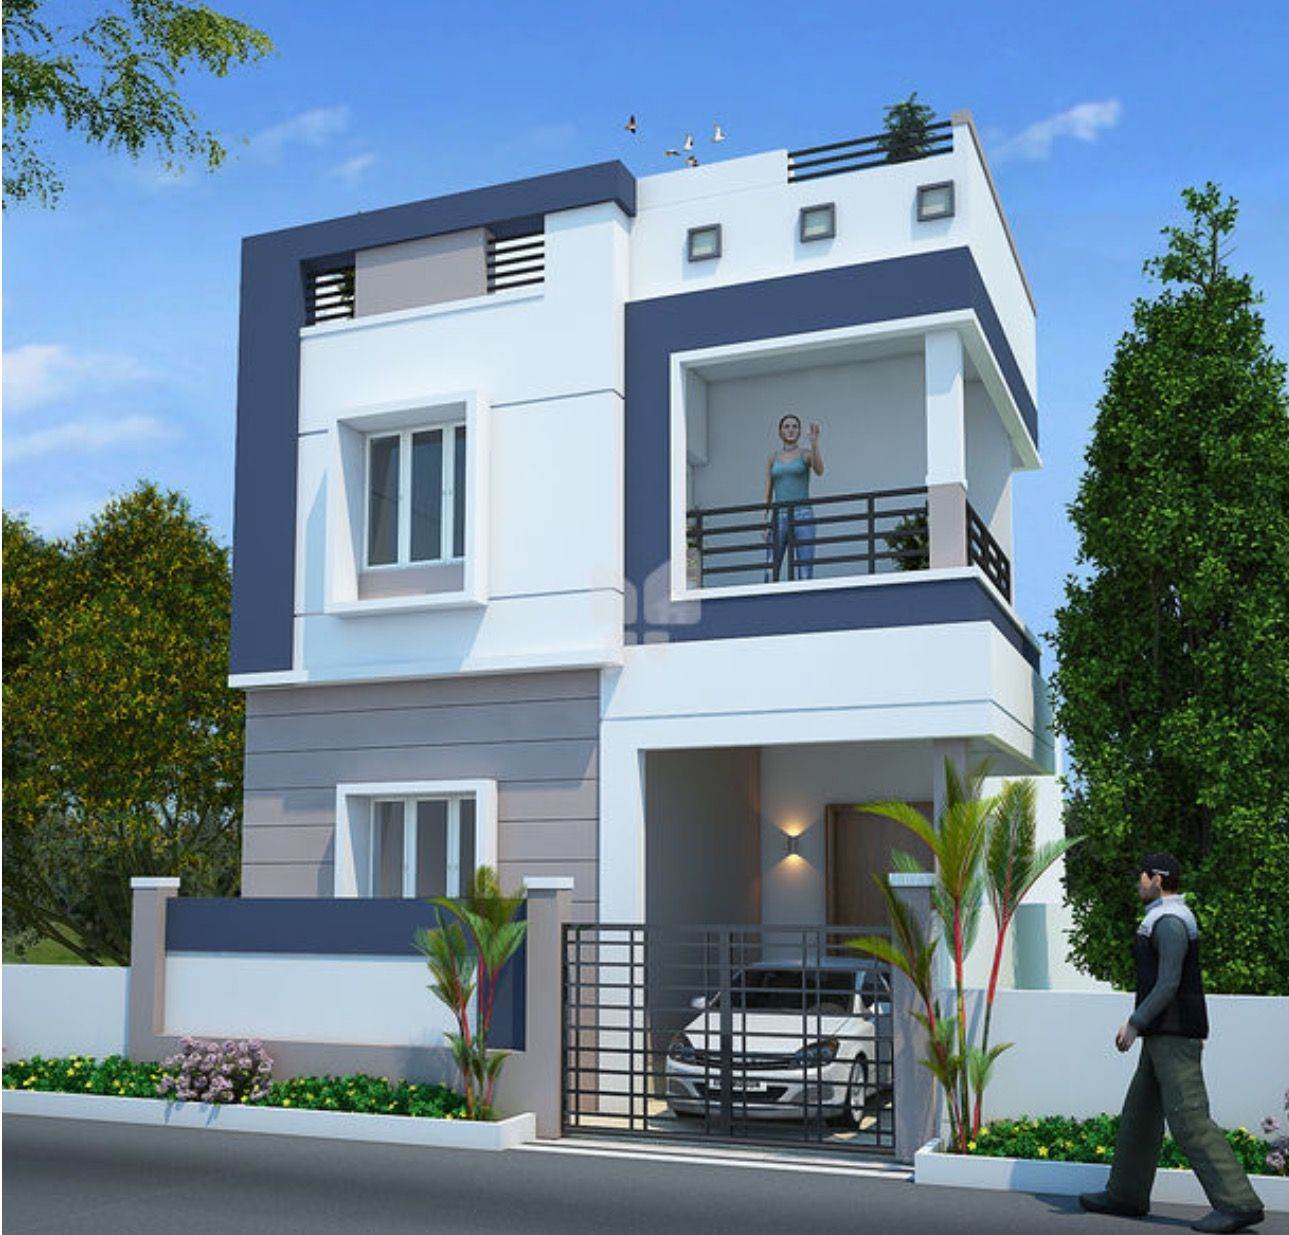 Two floors house... Small house plans, House styles